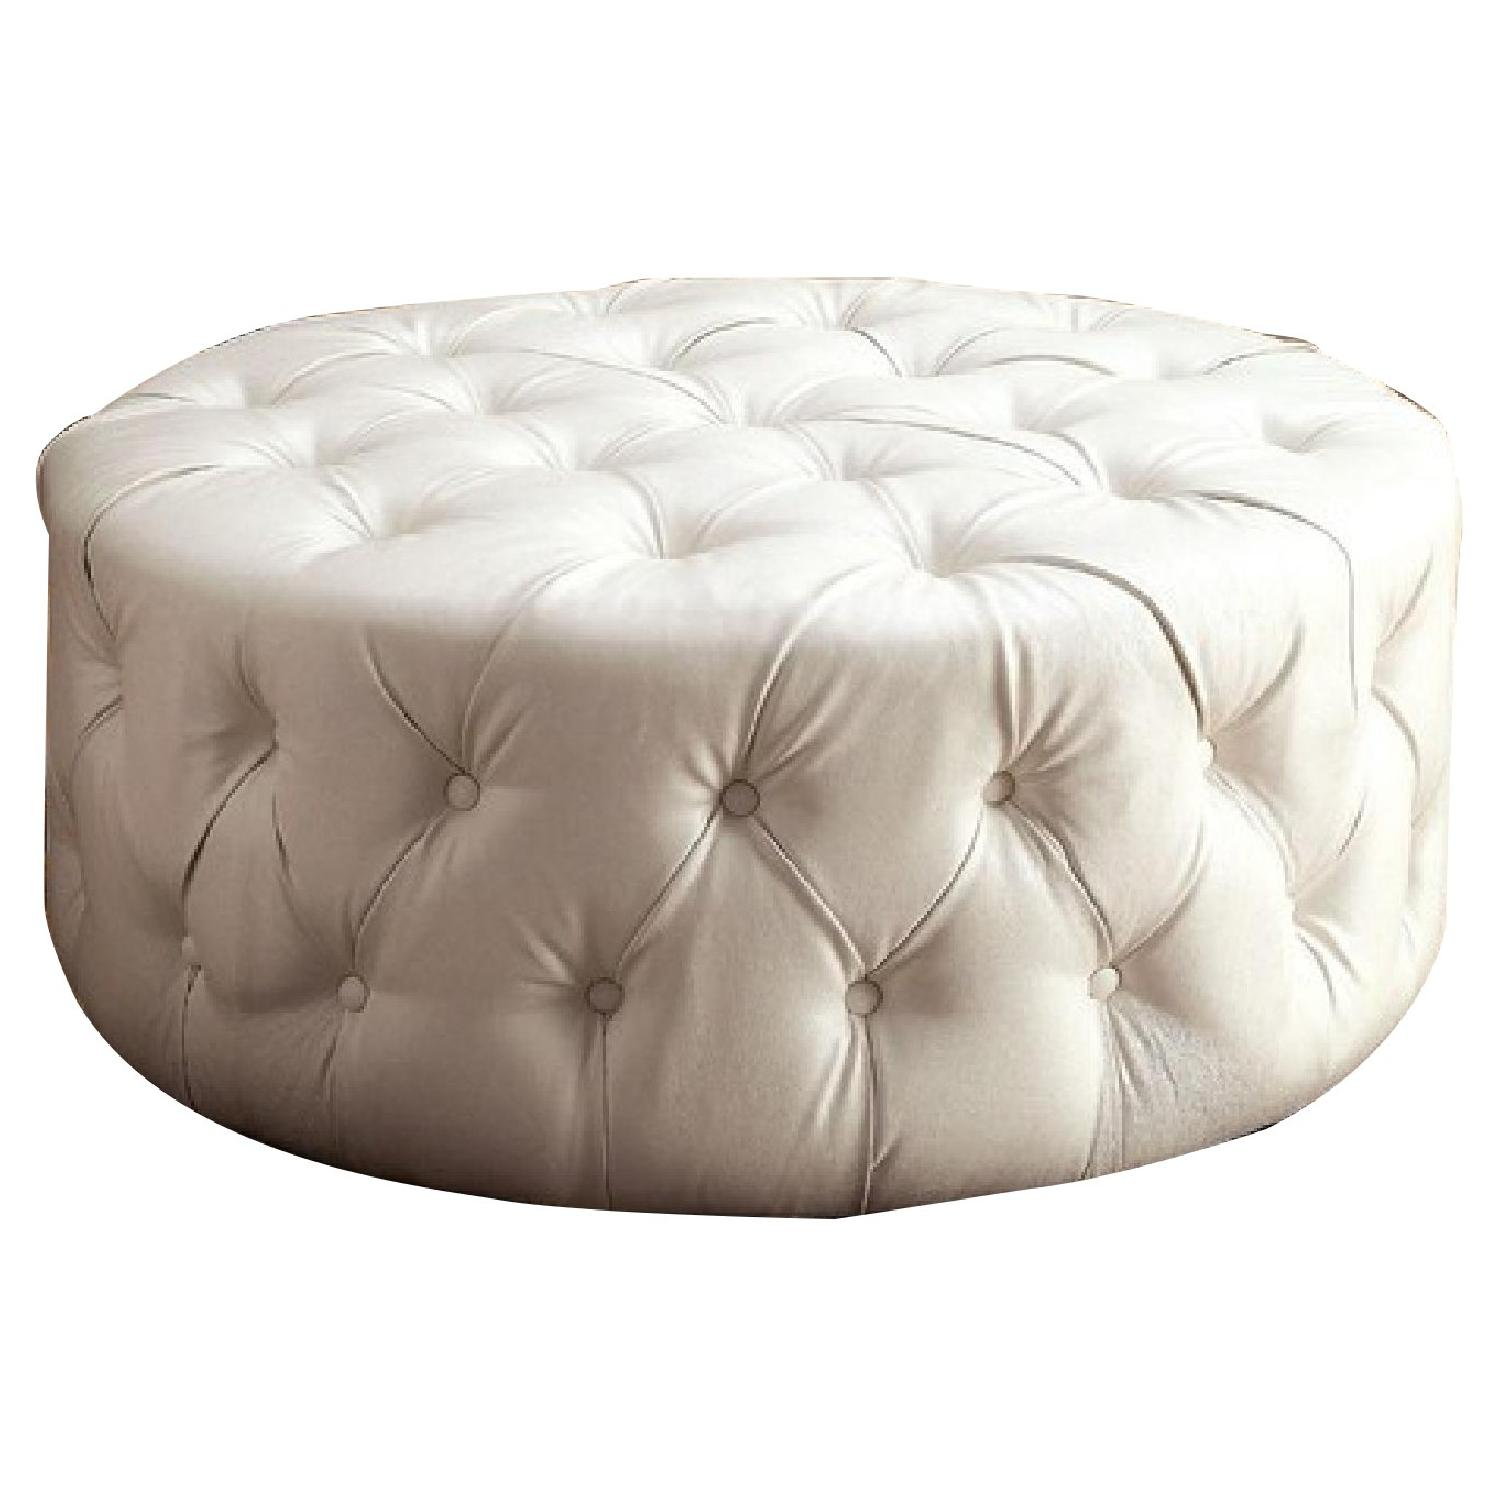 House of Hampton Bowie Leather Tufted Round Ottoman